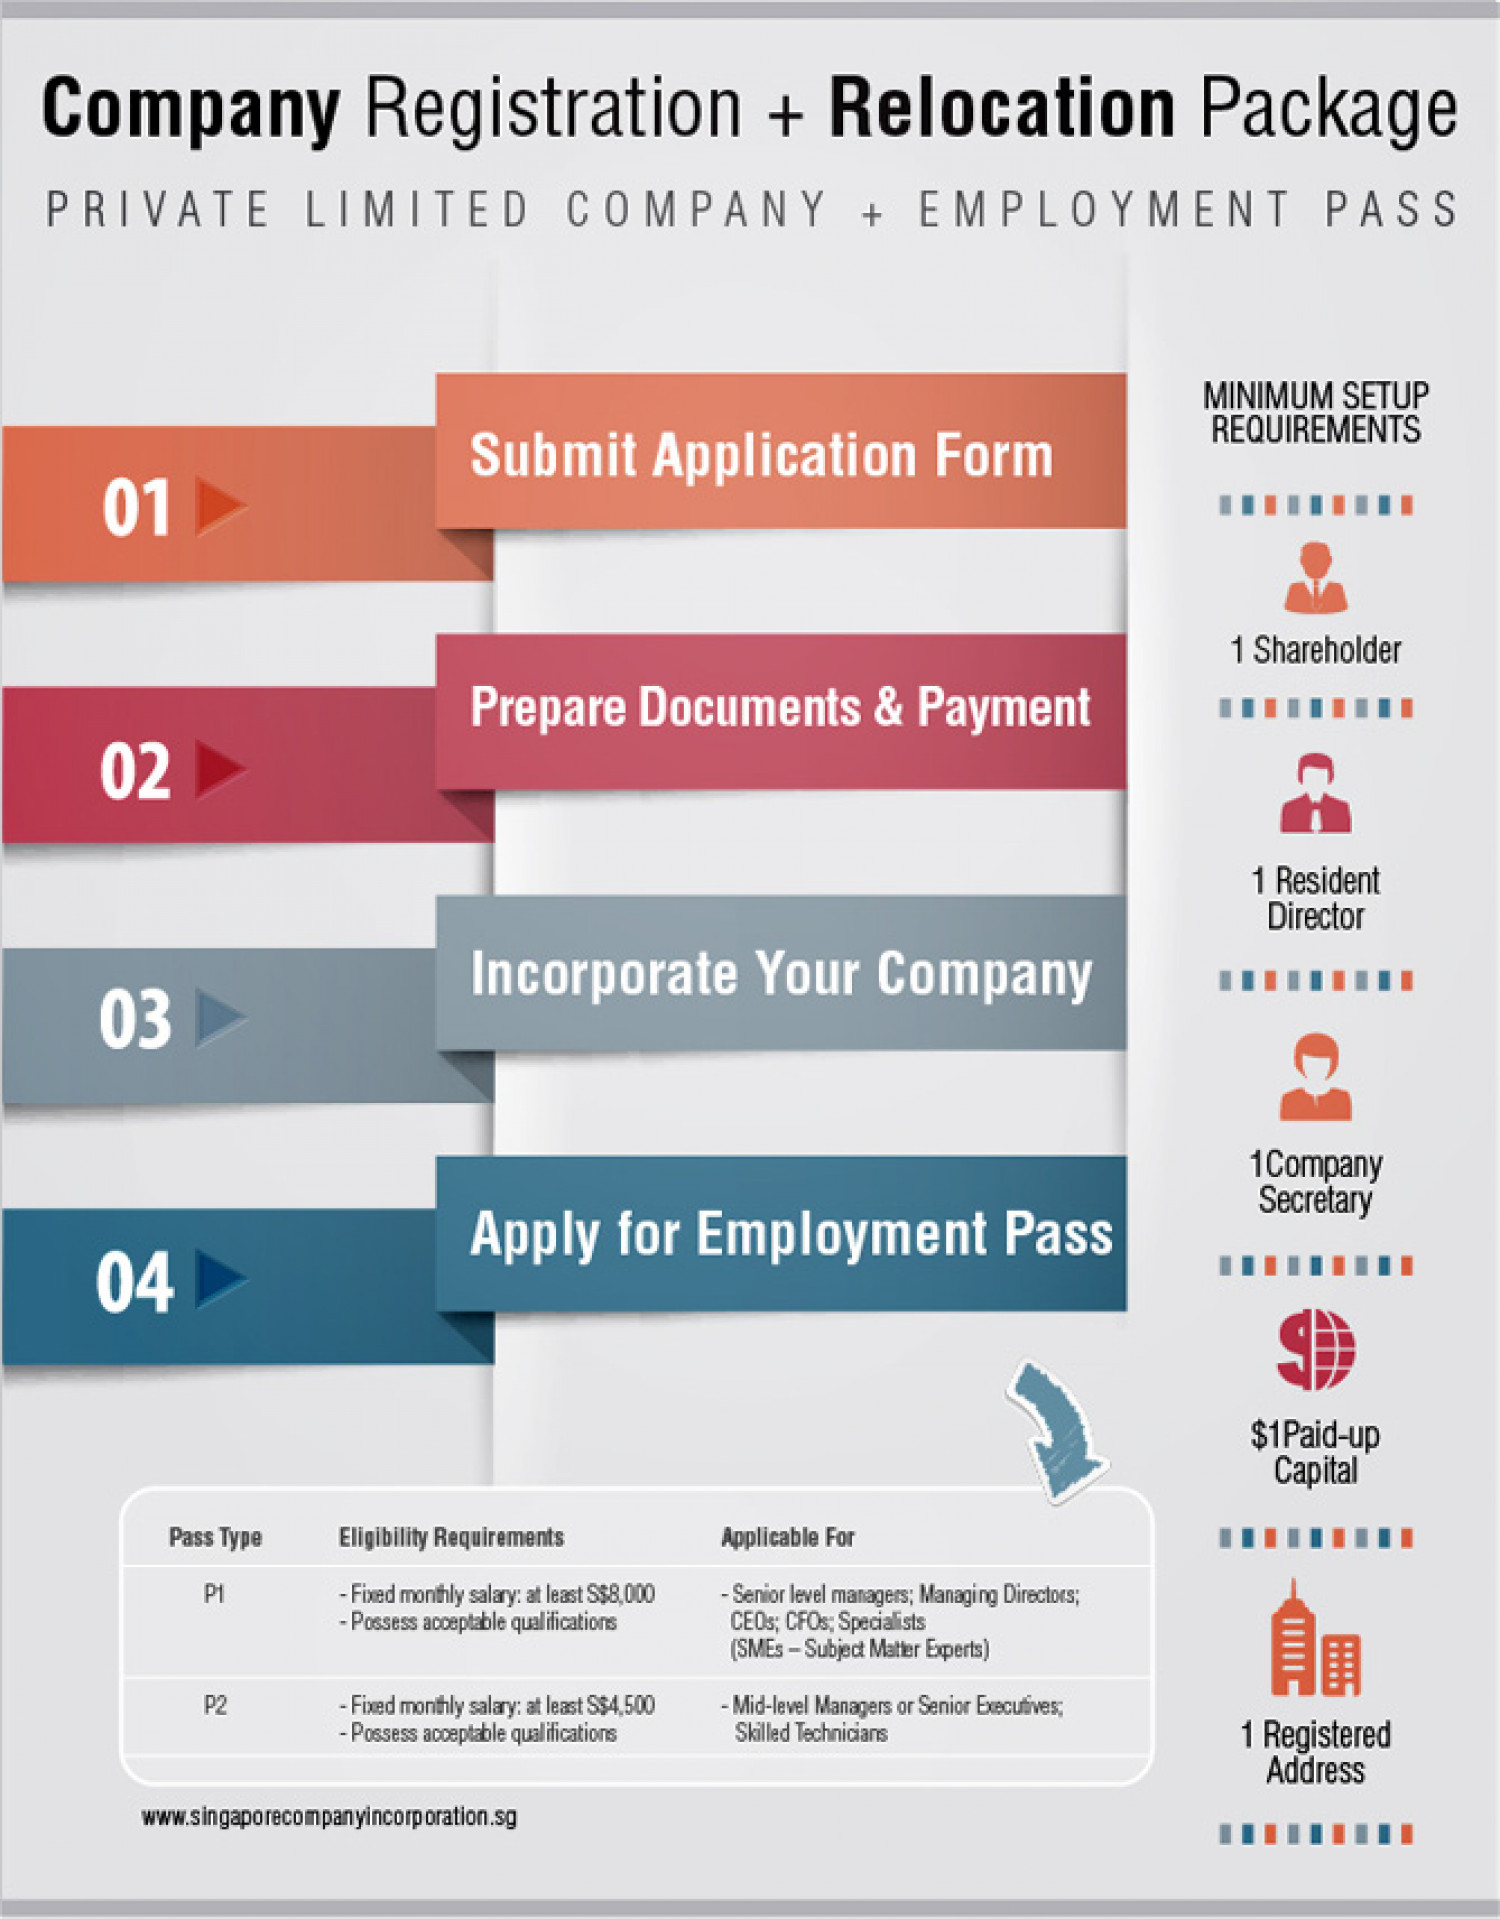 company registration relocation package visual ly company registration relocation package infographic